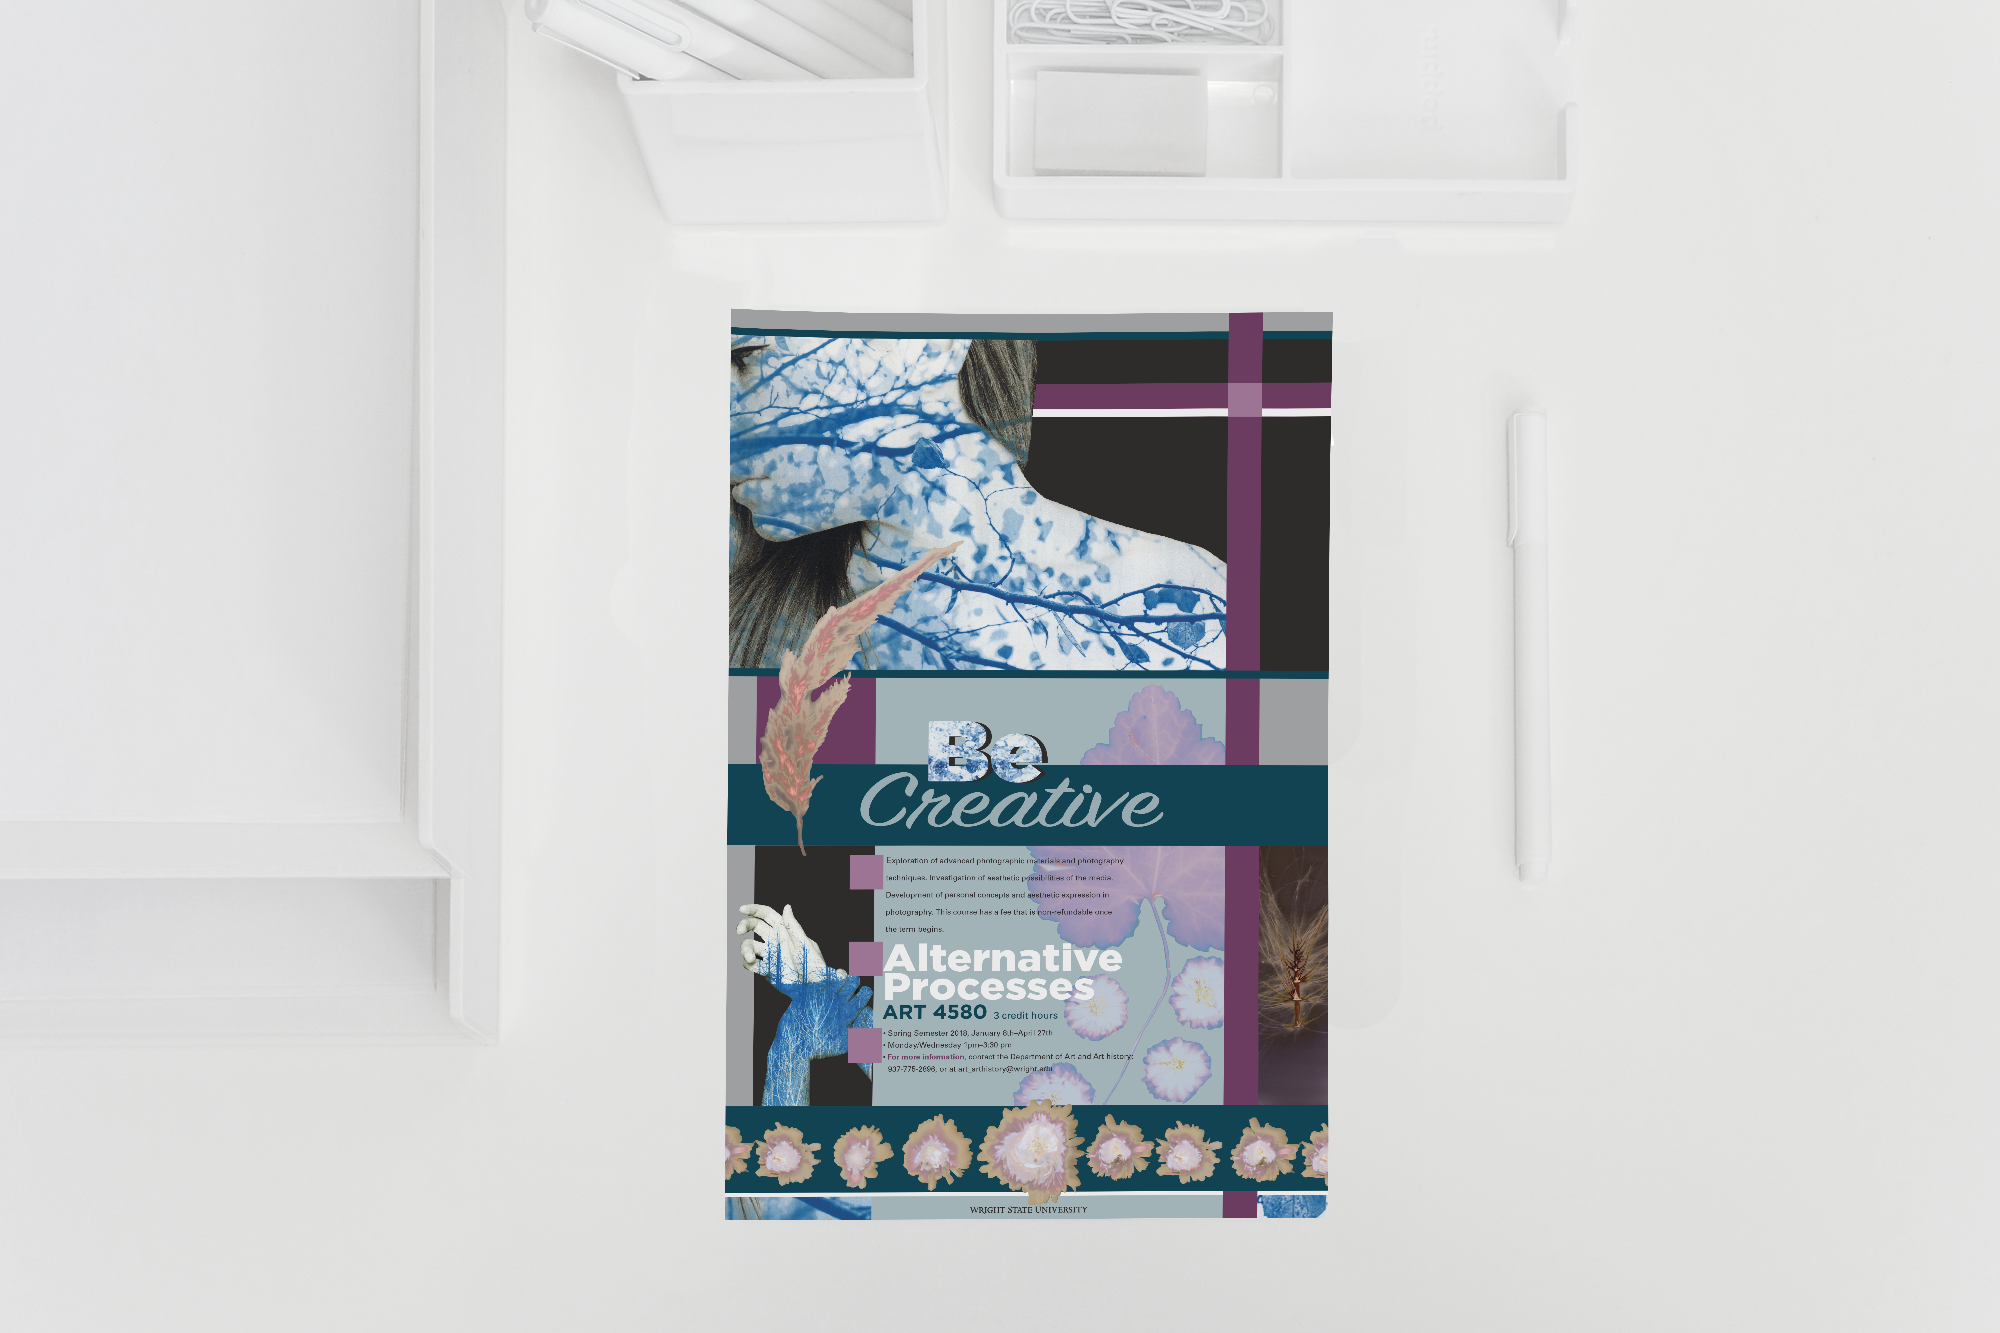 posterlayout01.png